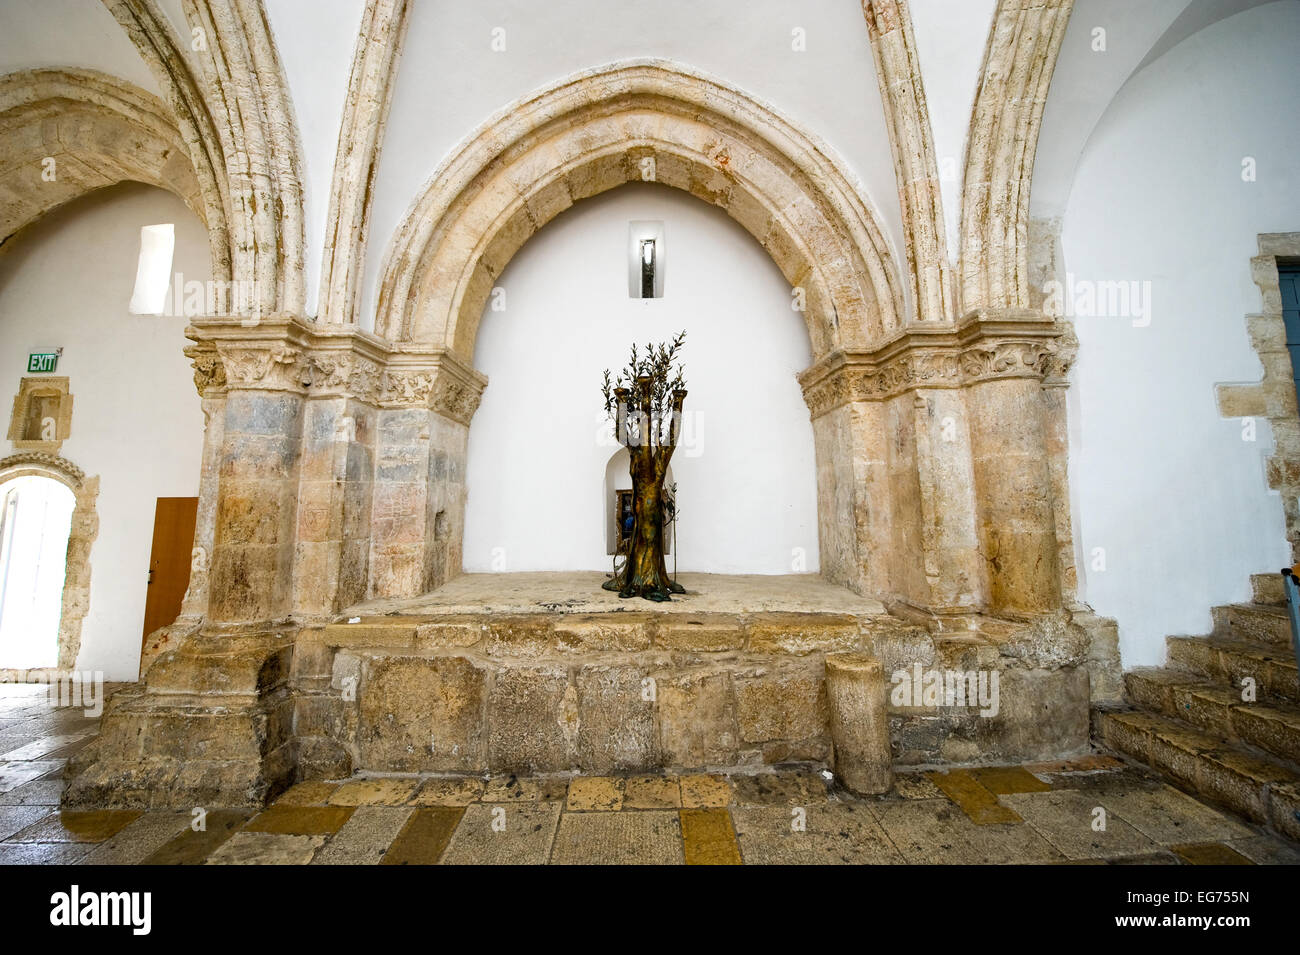 The Tree Of Life In The Last Supper Room The Last